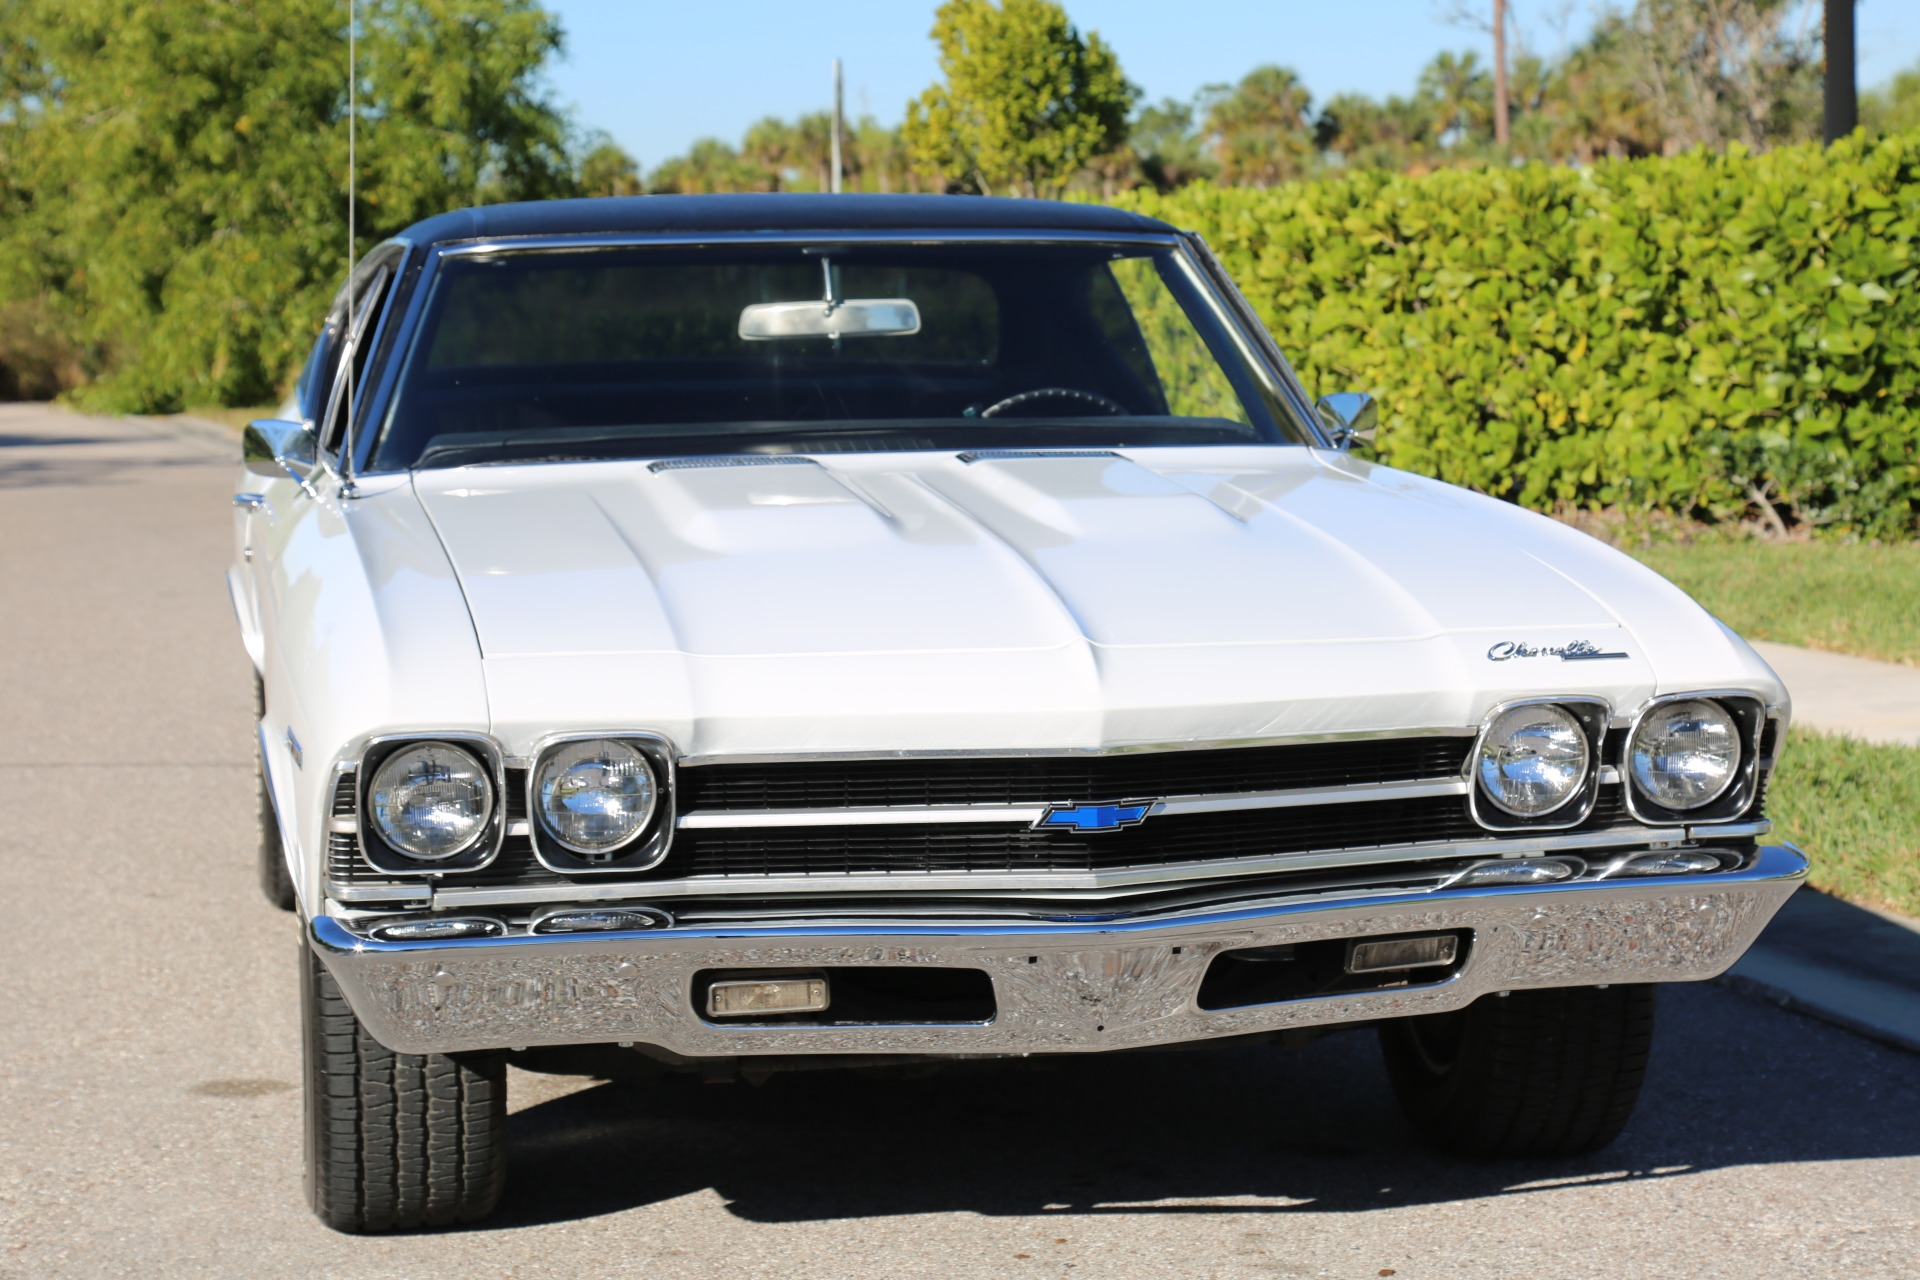 Used 1969 Chevy Chevelle V8 Auto for sale $27,000 at Muscle Cars for Sale Inc. in Fort Myers FL 33912 3